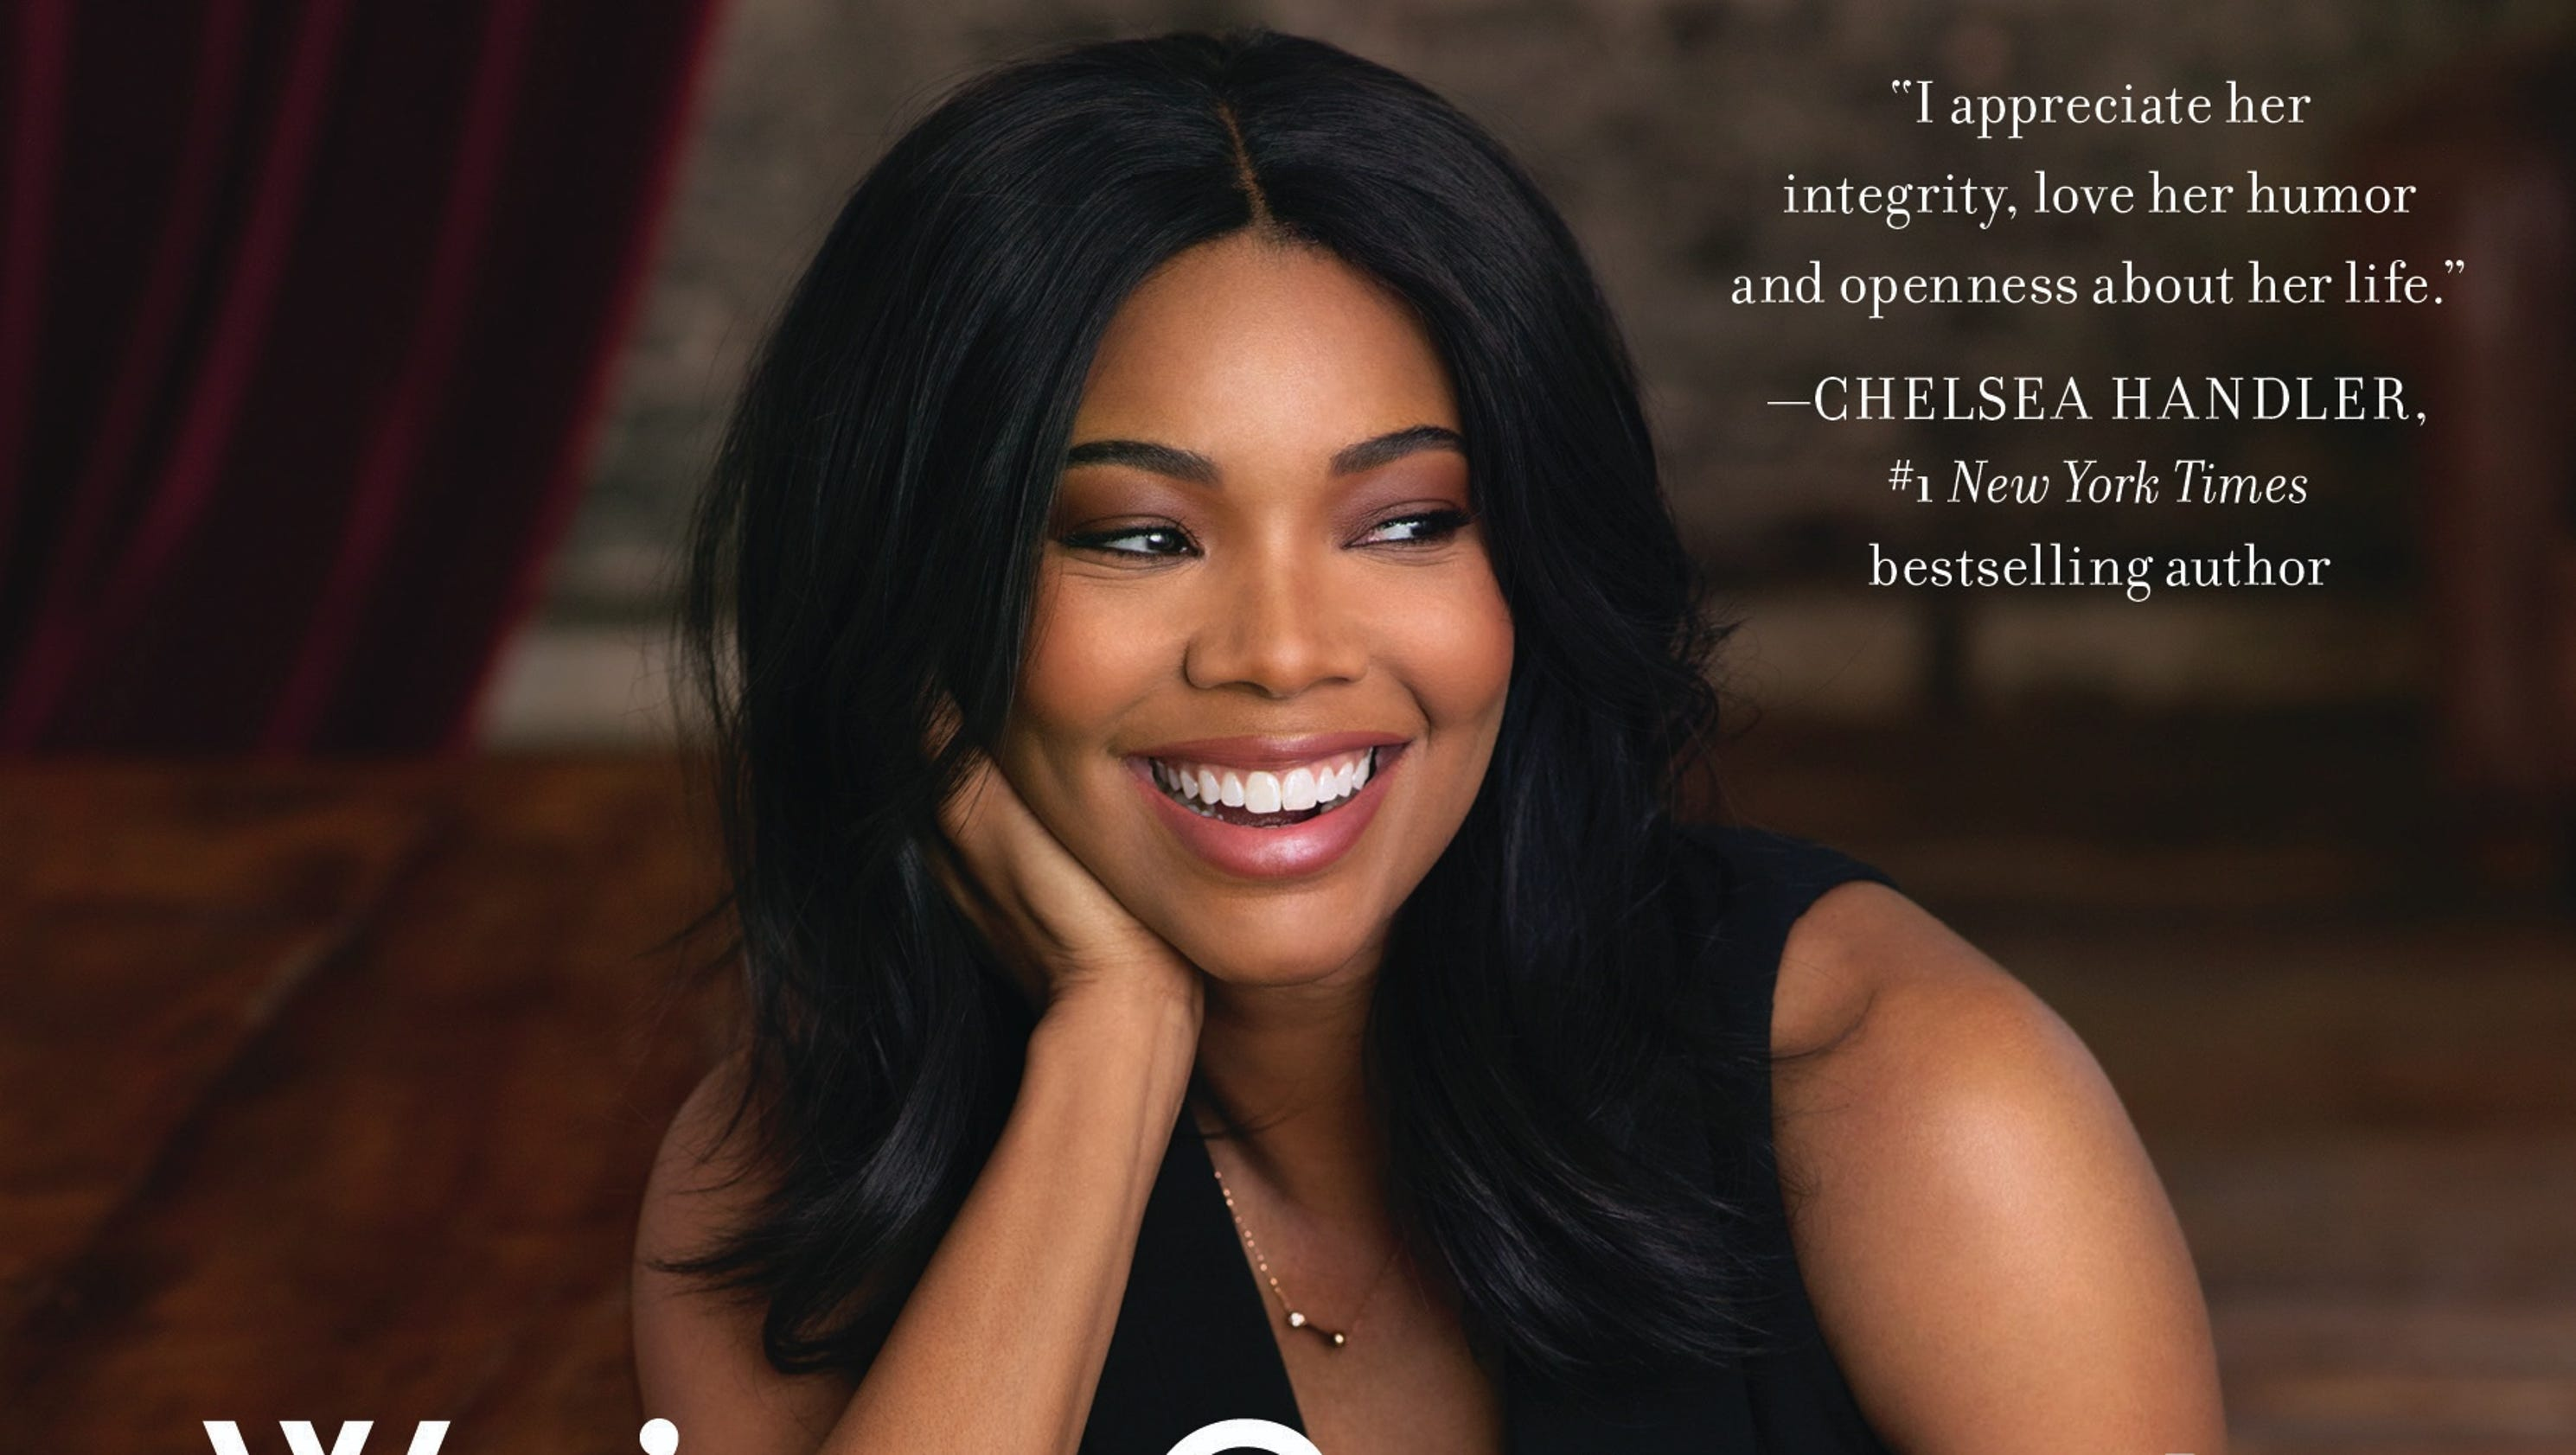 Gabrielle Union gets real about rape, relationships in her new book